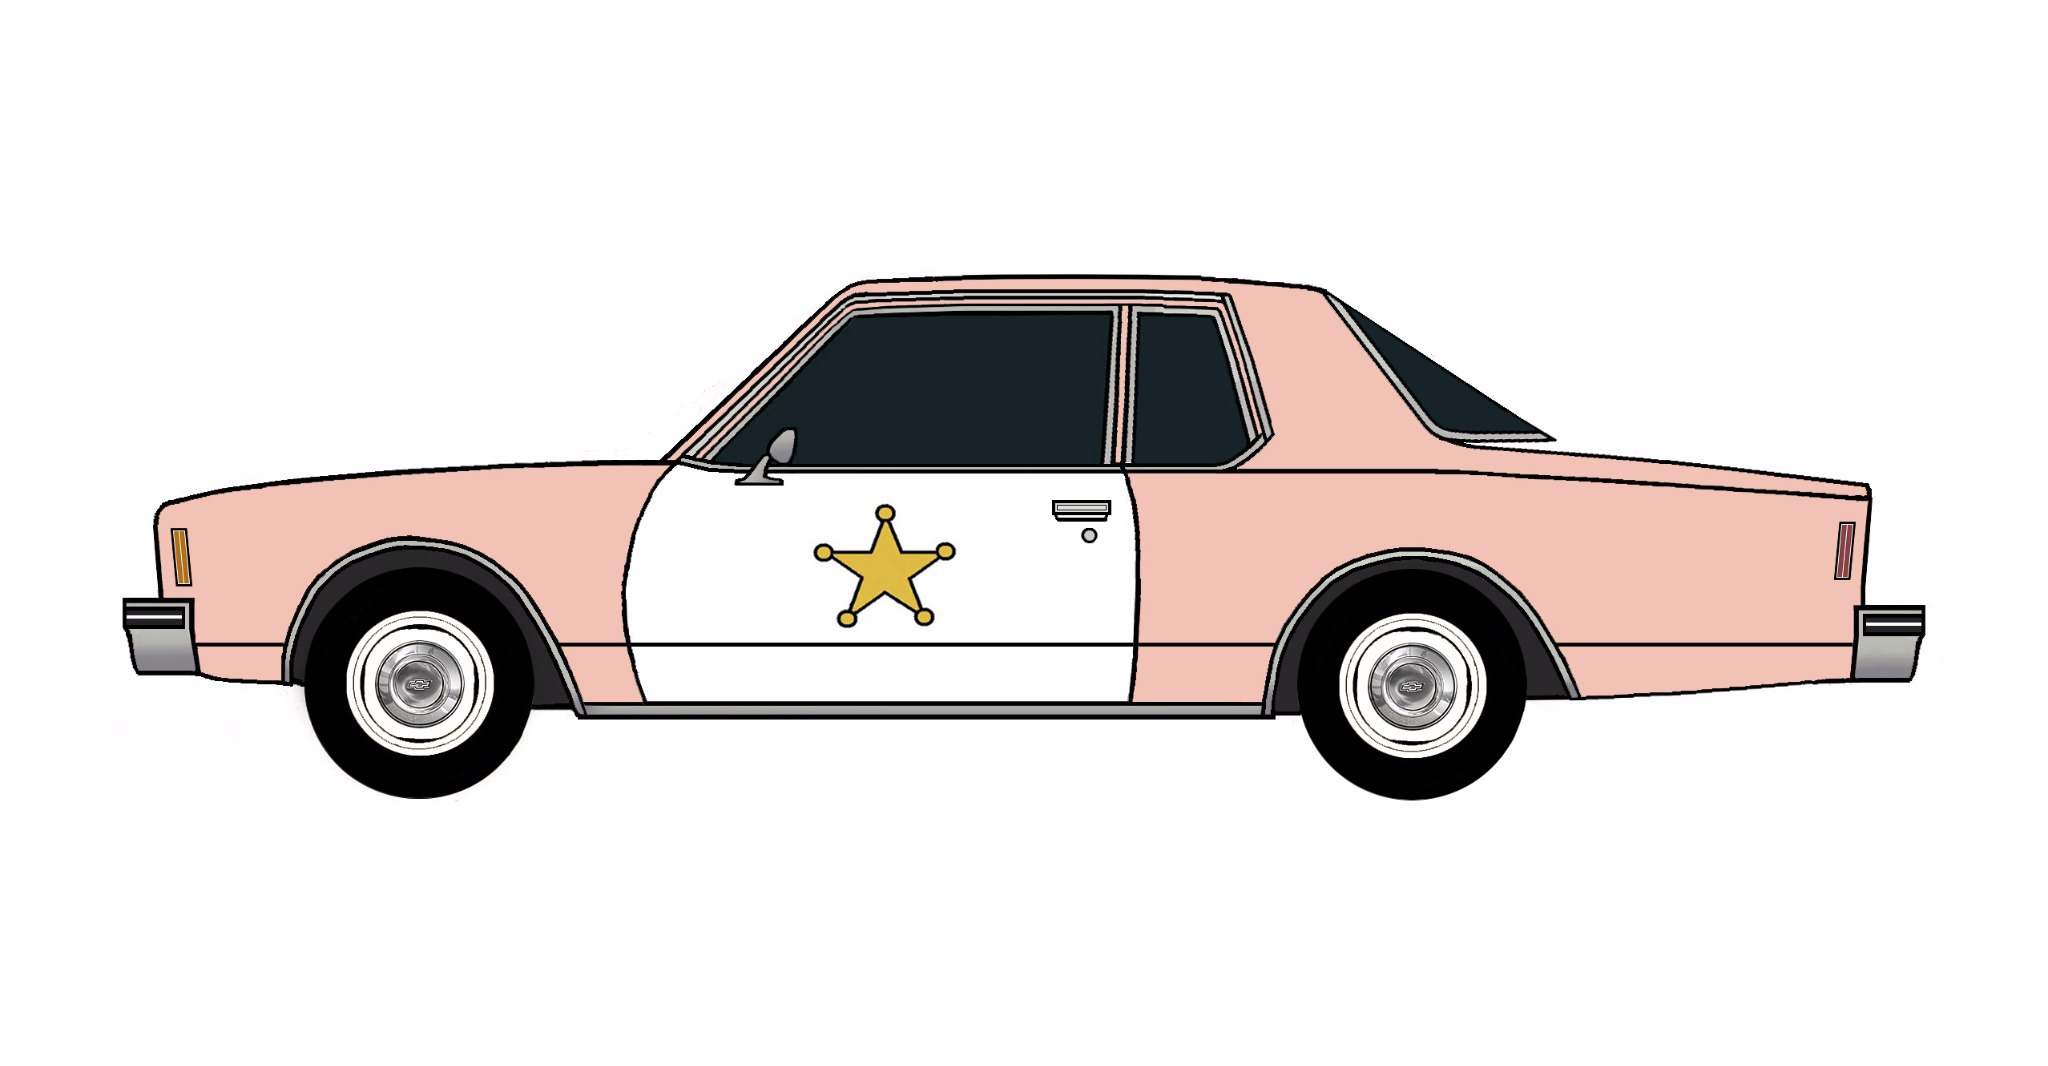 1978 Chevy Impala Police Coupe ROSE PINK